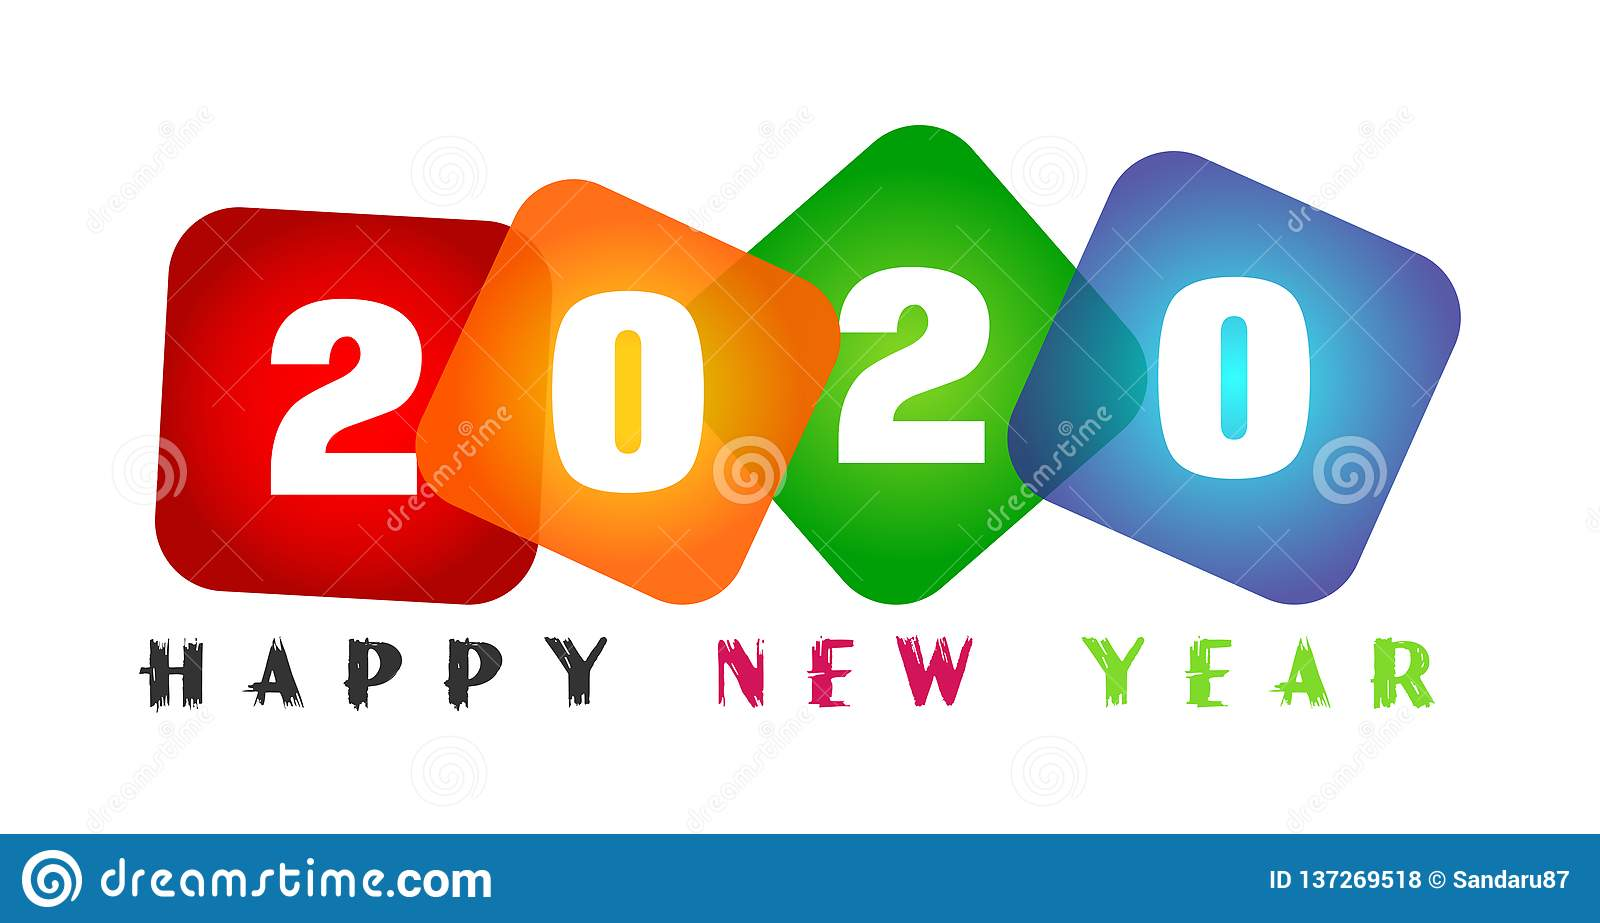 Happy New Year 2020 card and colorful greeting text design in colored on white background